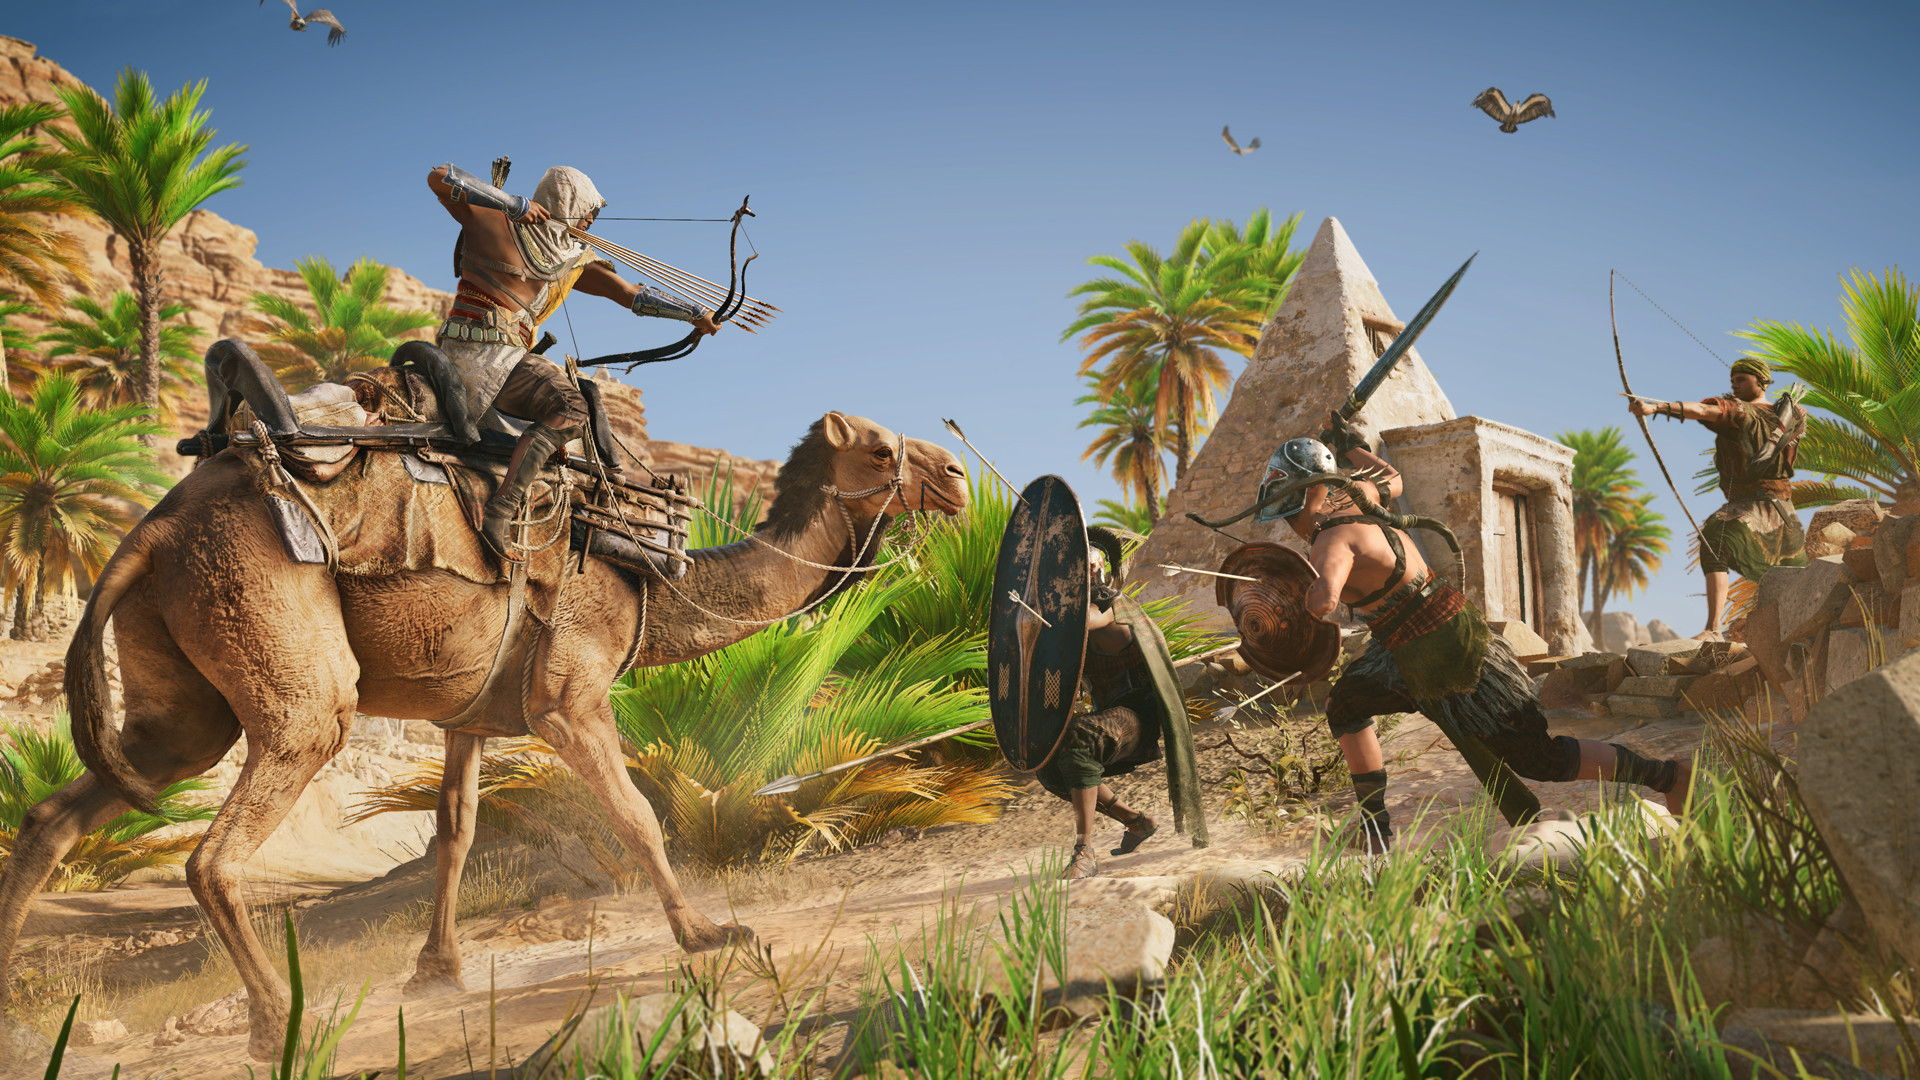 Photo of Assassin's Creed Origins: The Discovery Tour Mode is now available, stuttering issues fixed